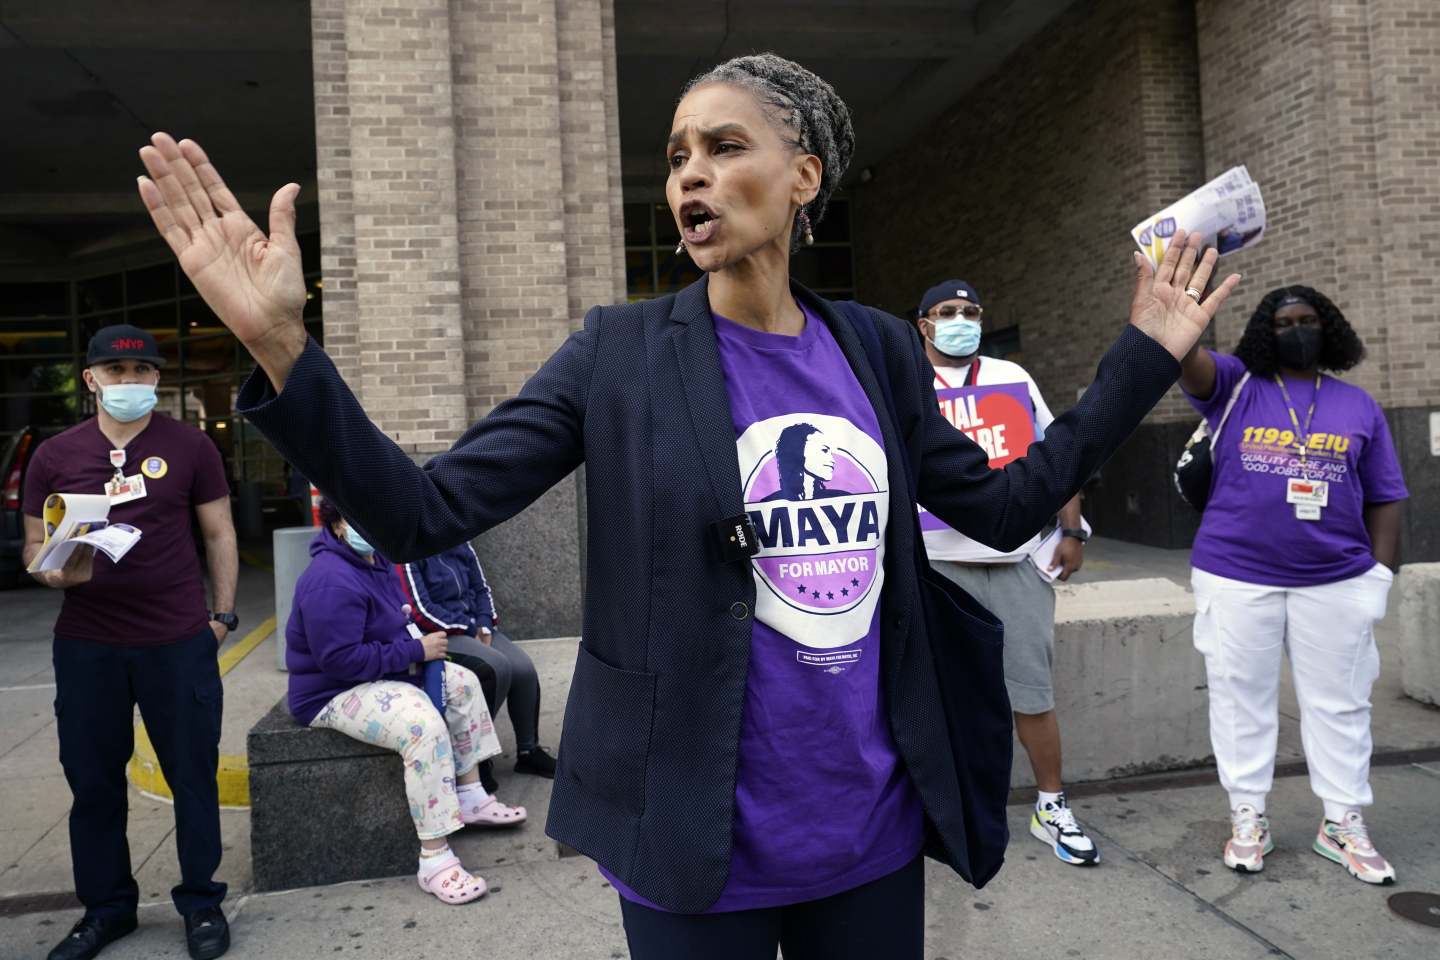 Safety, Quality of Life Are Top Concerns in N.Y. Mayoral Race